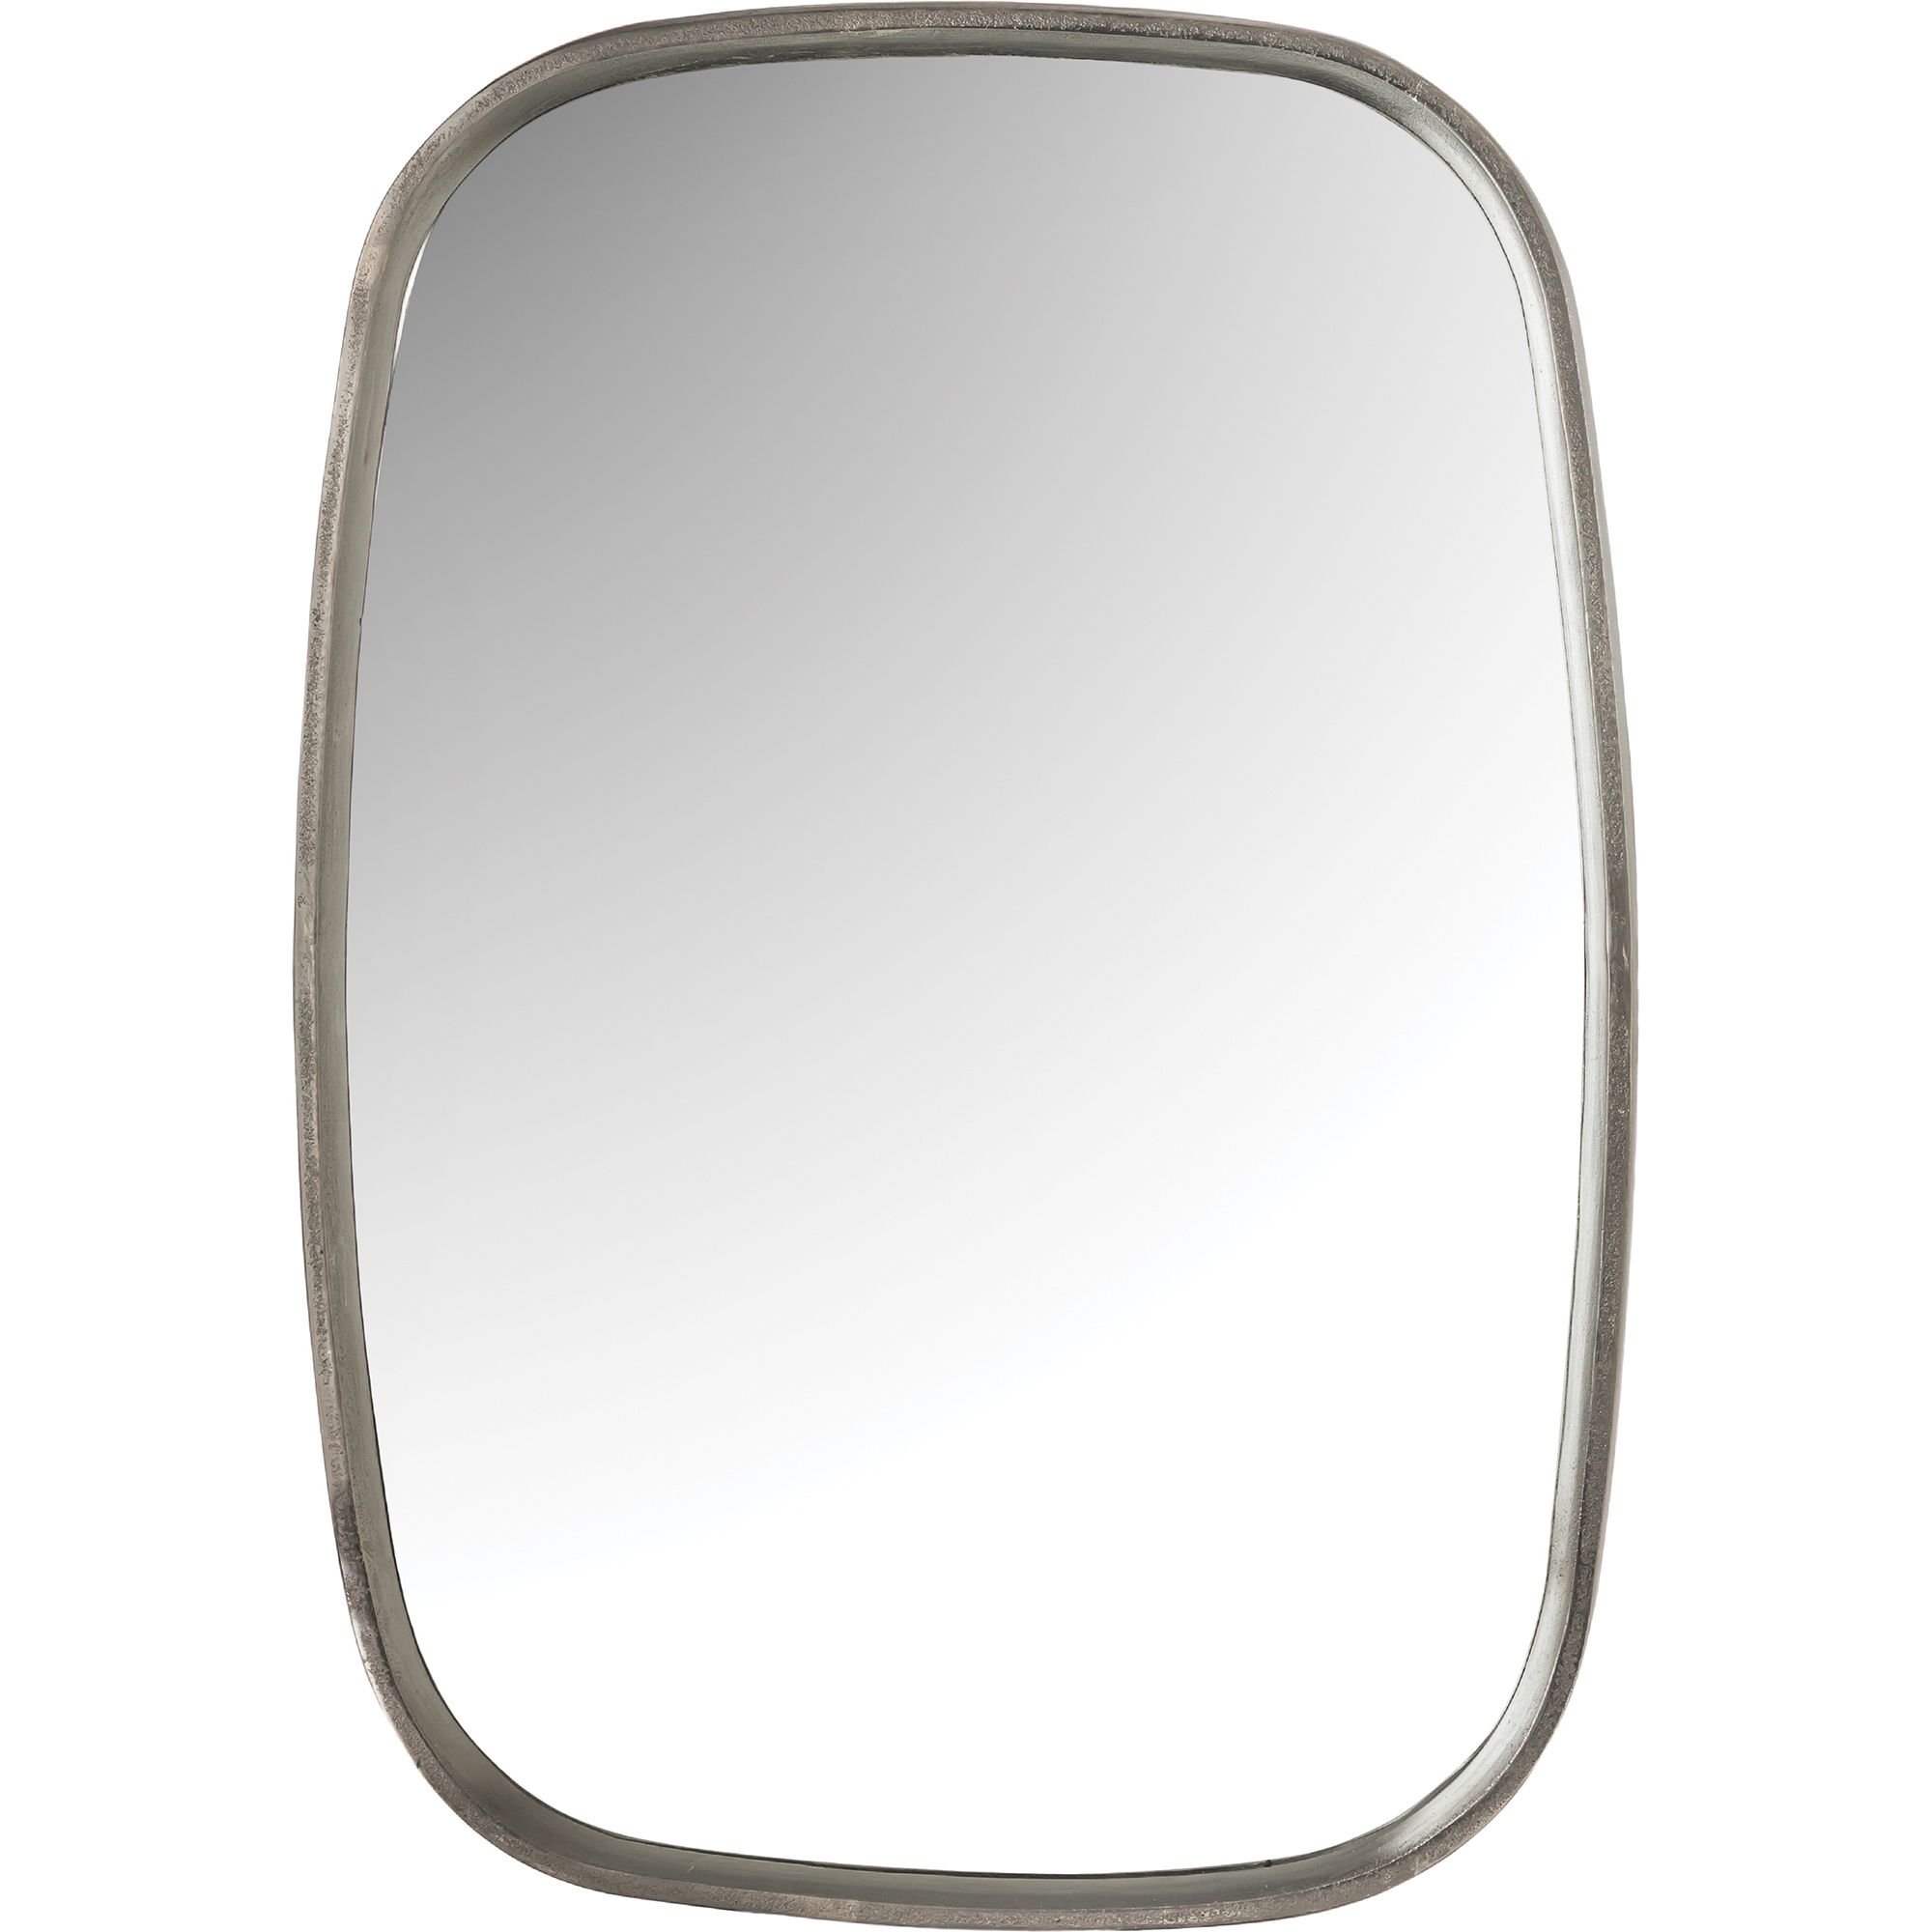 Mara – Mirror With Regard To Industrial Modern & Contemporary Wall Mirrors (View 19 of 20)